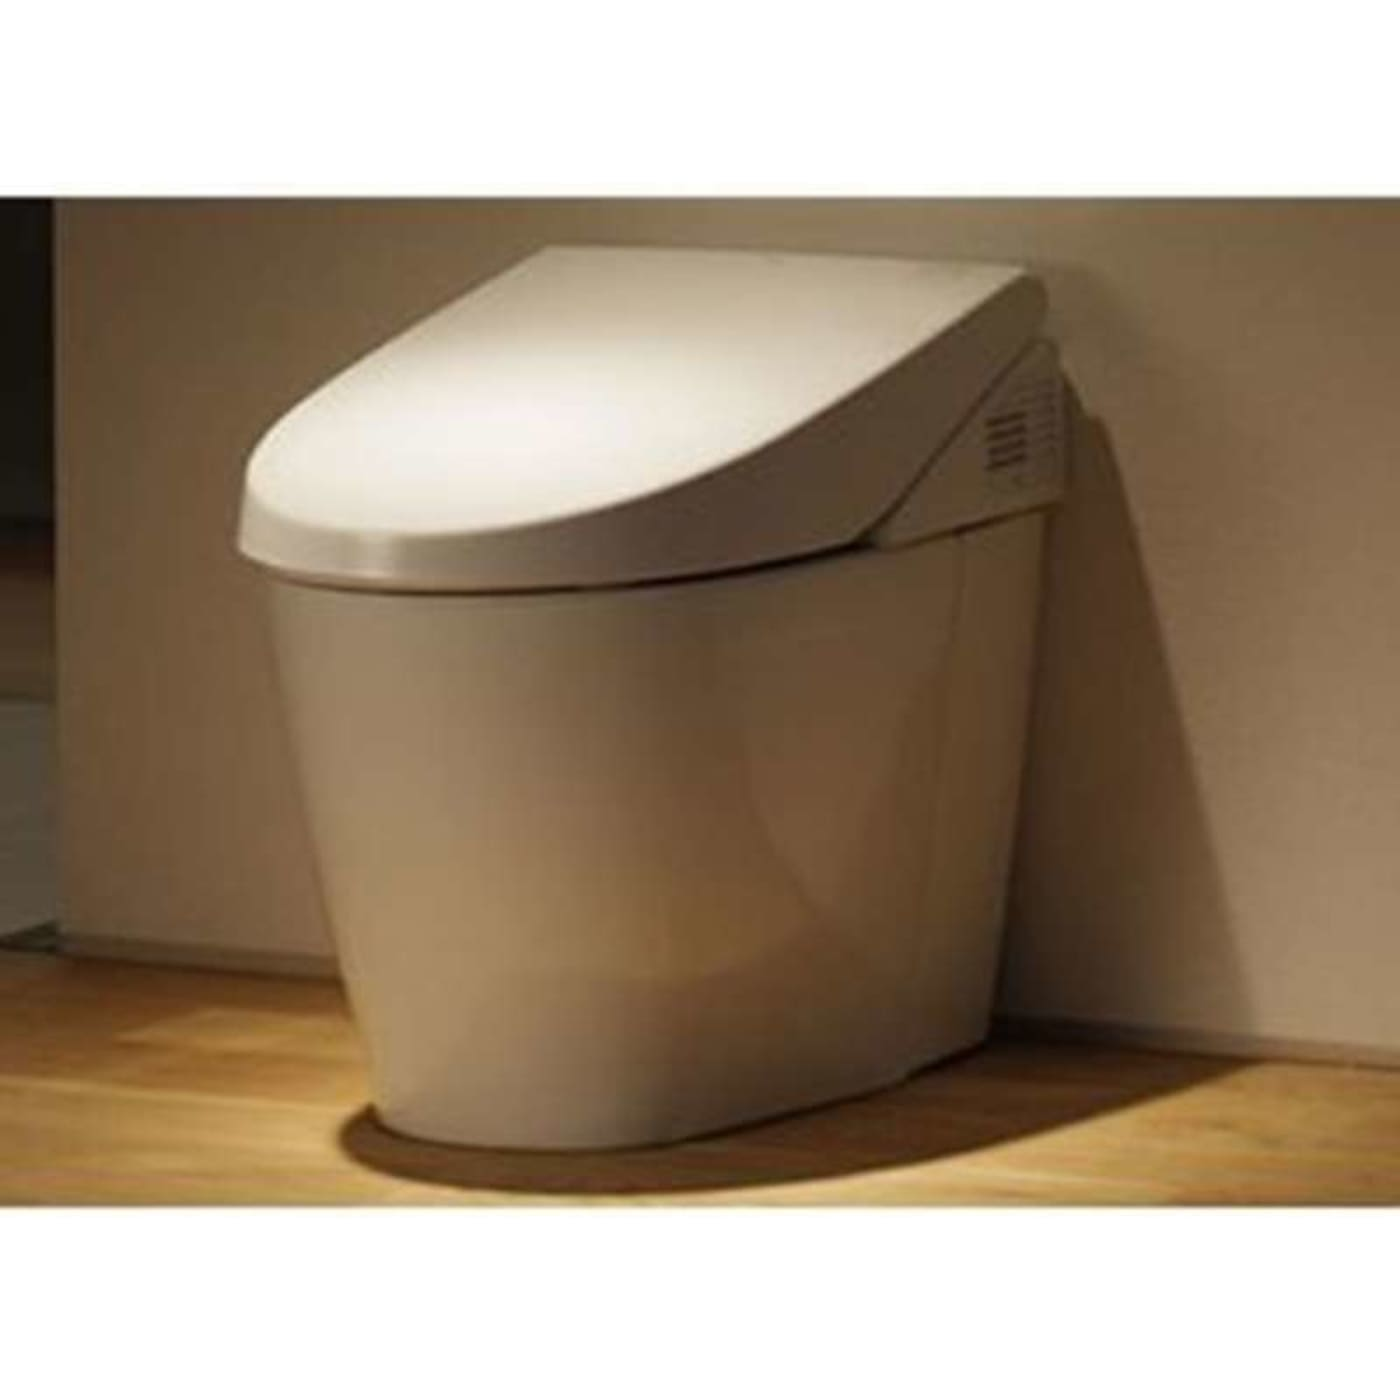 THU9204#01 by Toto - Toilets | Goedekers.com